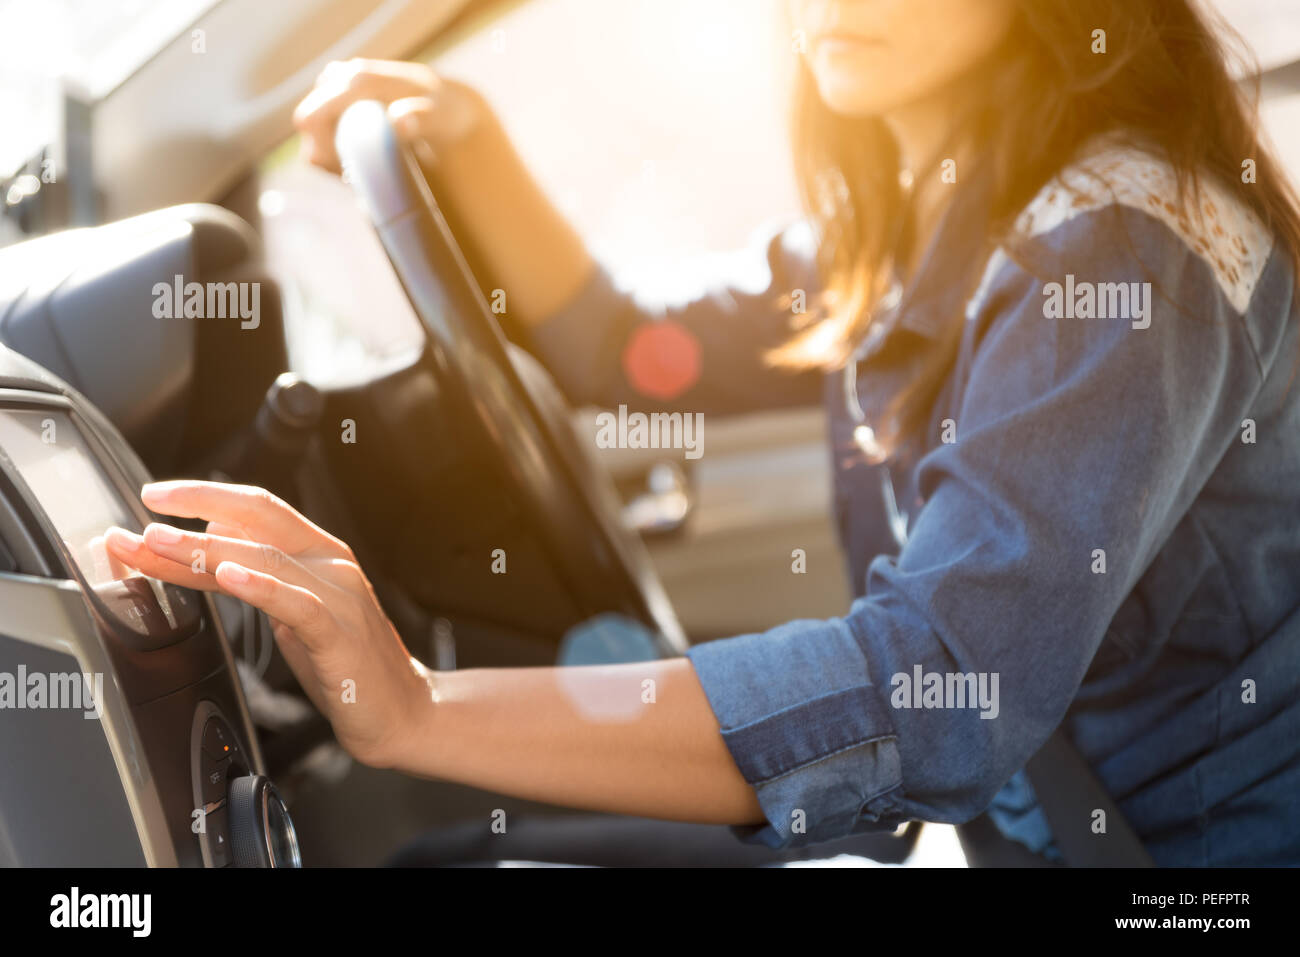 woman driver hand touching the screen entering an address into the navigation system and turning on car radio system. - Stock Image